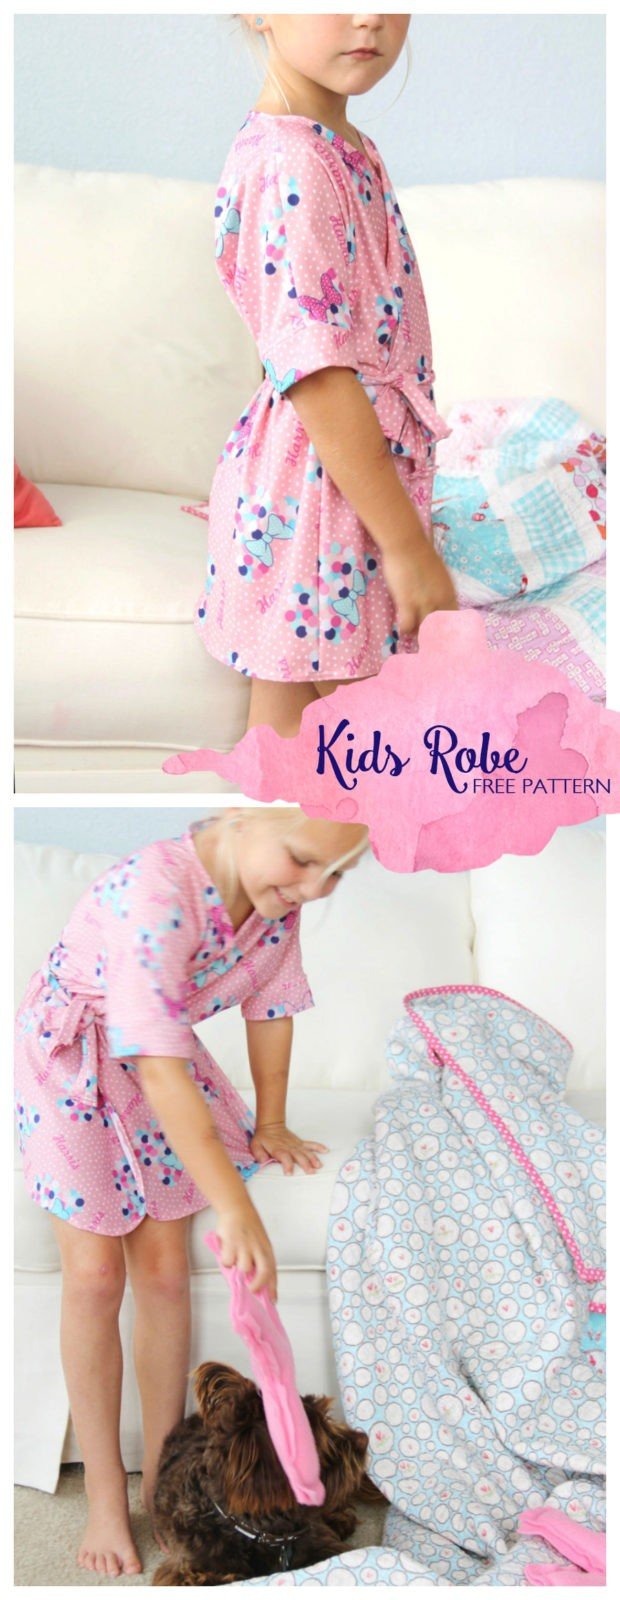 how to sew a kids bathrobe, with FREE PATTERN